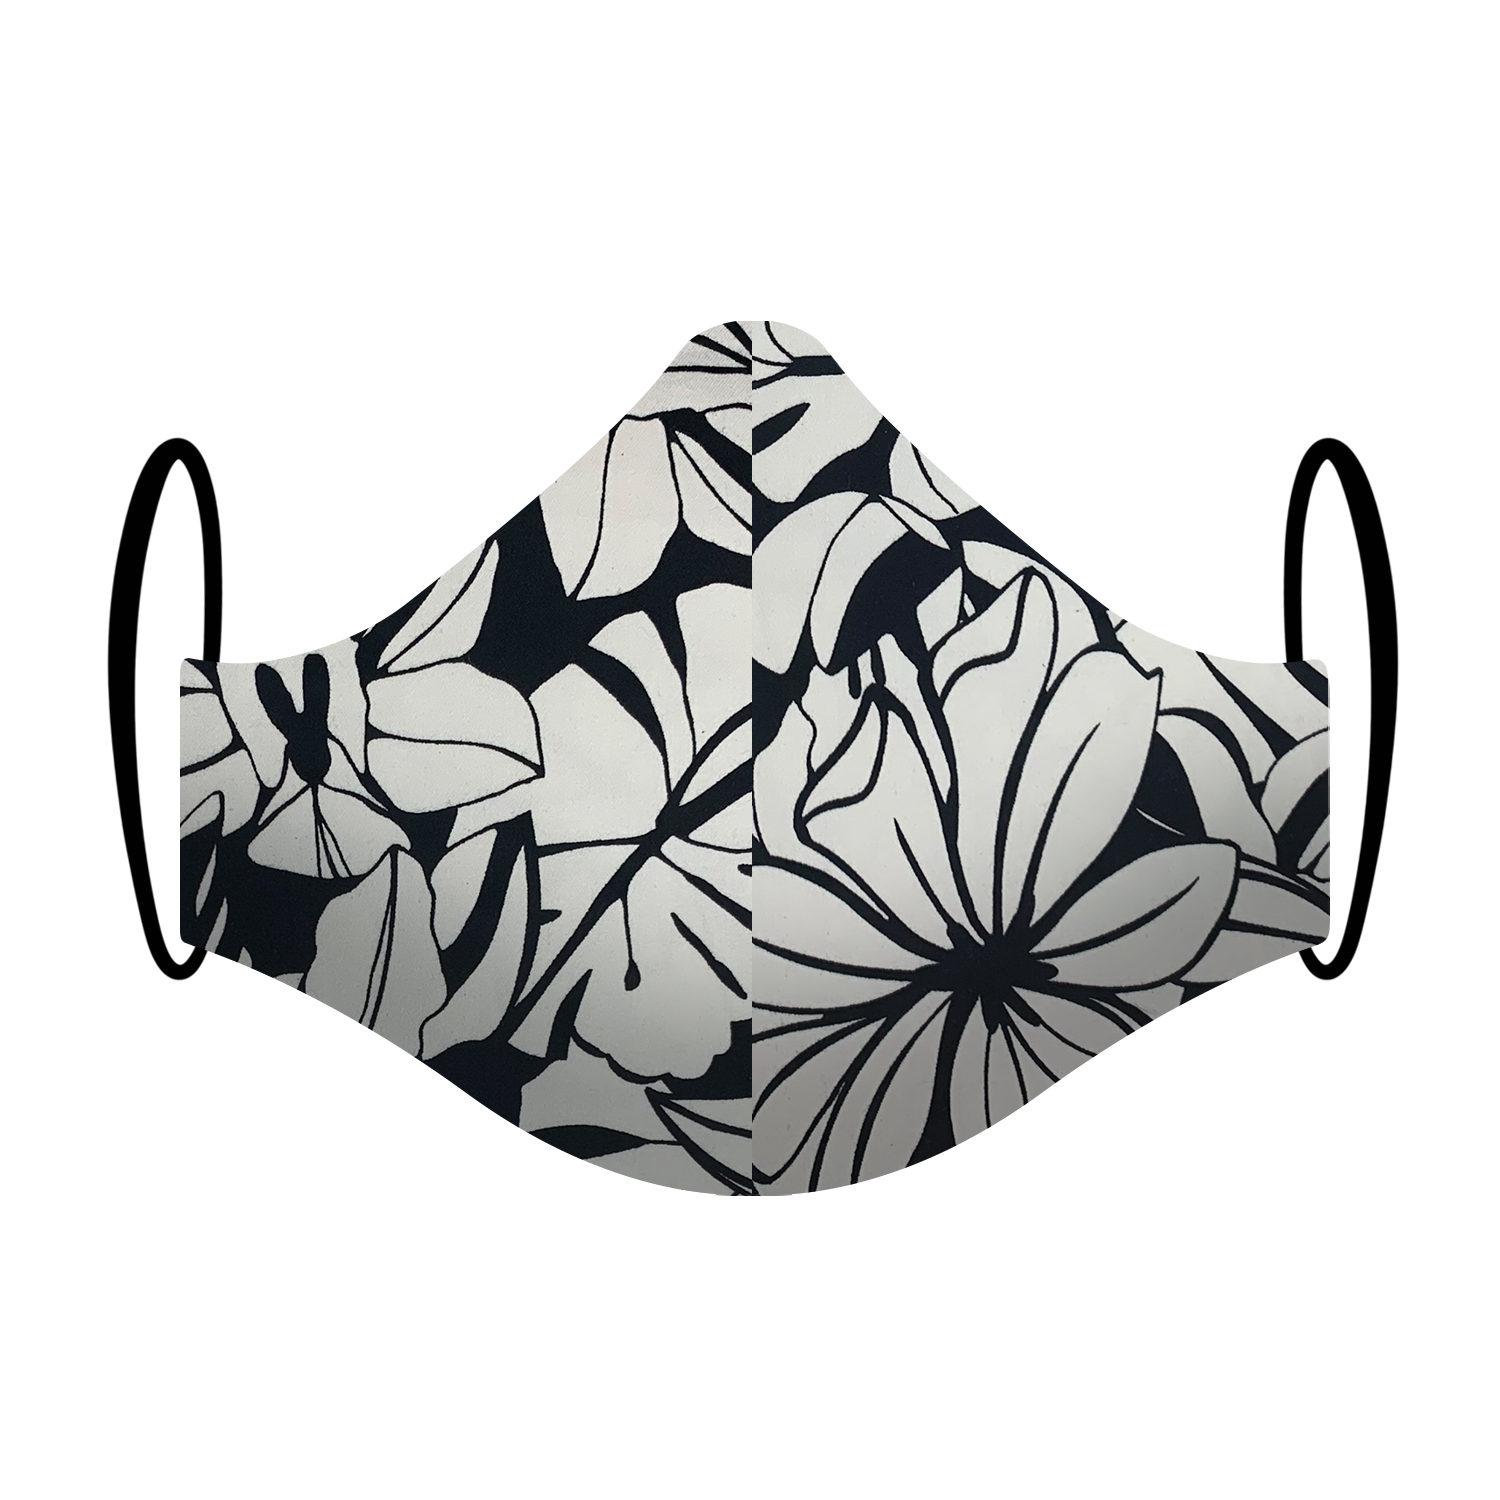 Triple layered face mask made in Melbourne Australia from cotton and poplin featuring a unique monochromatic abstract leaf print